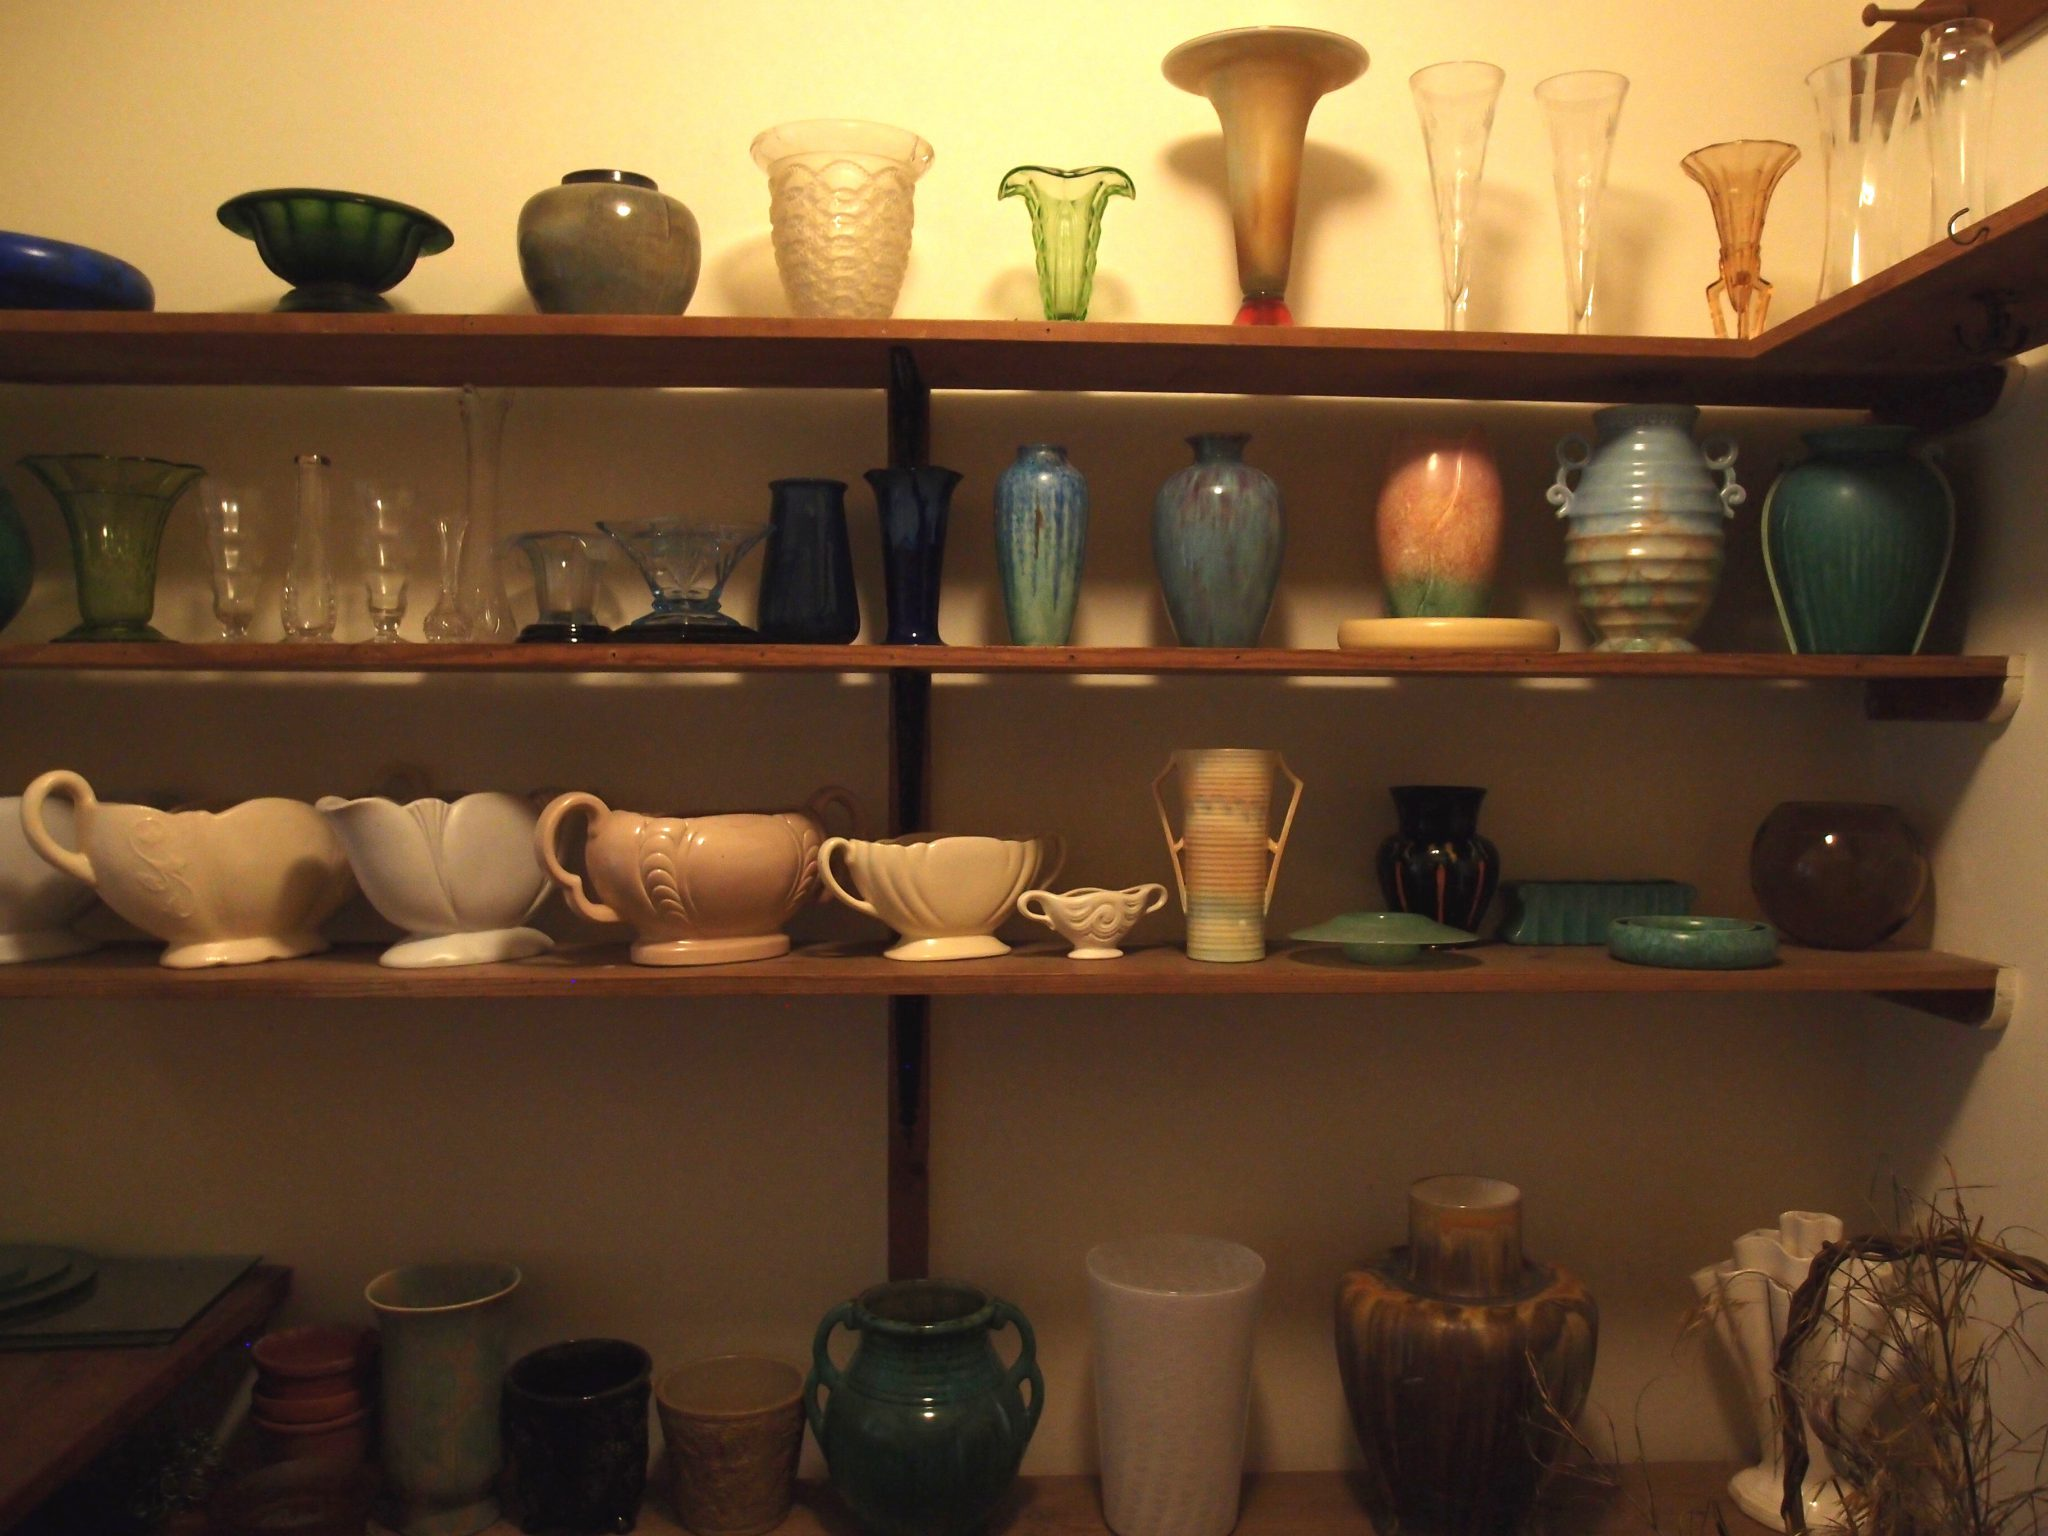 Vases, ready for fresh cut flowers, on shelves in the Flower Room. This was Dorothy's domain.